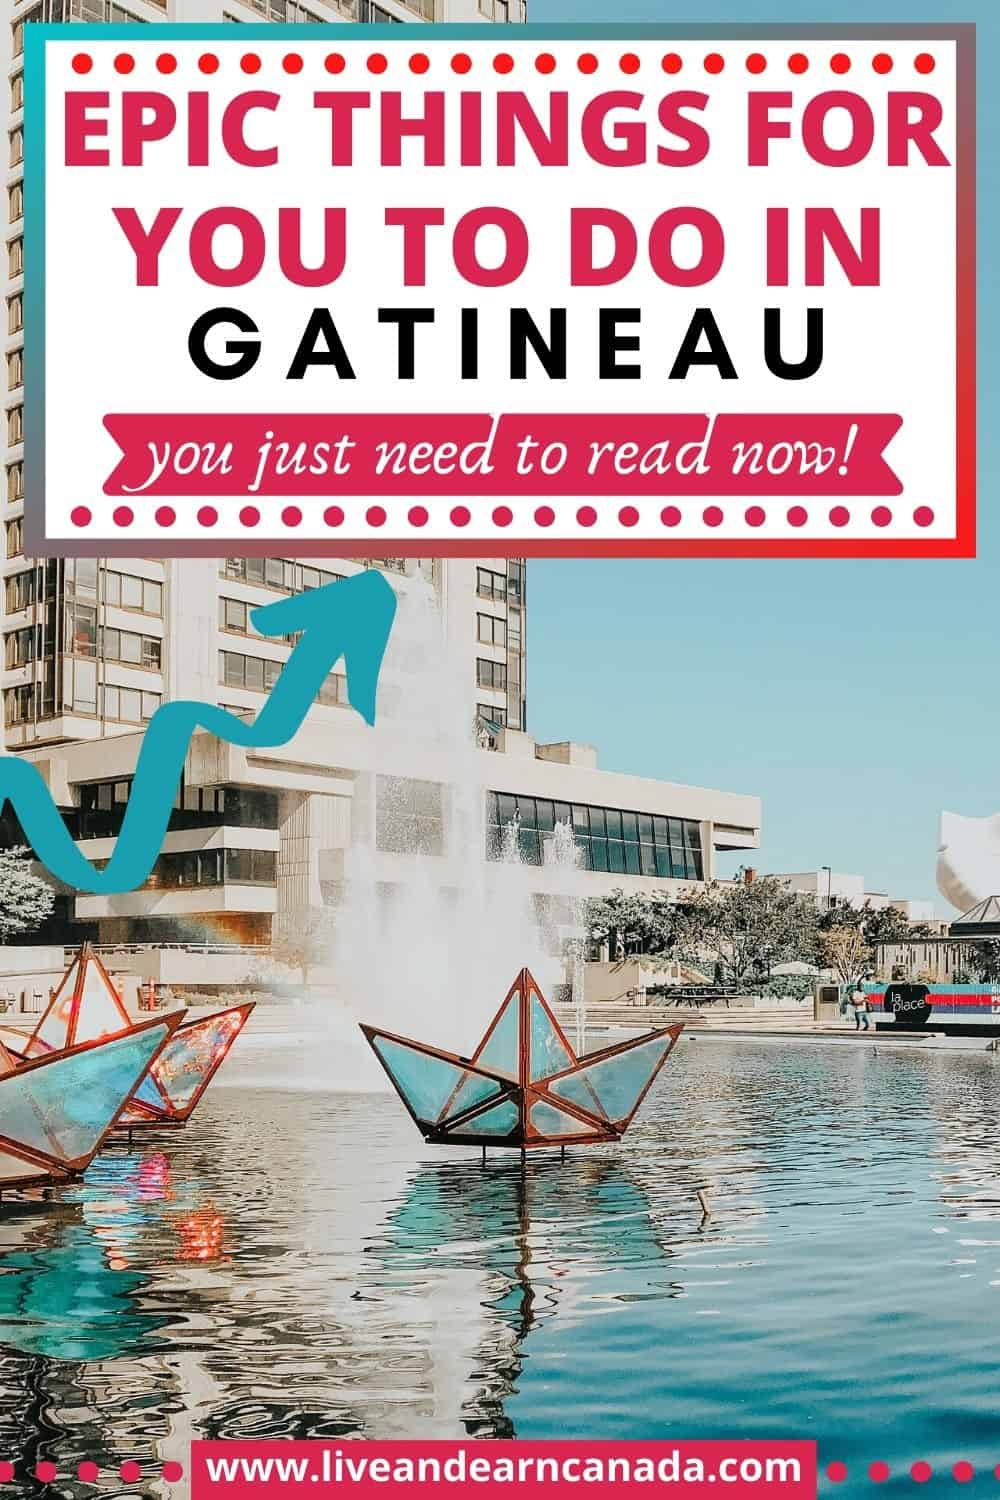 Are you looking for things to do in Gatineau? Gatineau is located near Ottawa in Canada and it is how to plenty of amazing things. Enjoy some good food, great people and sightseeing activities when you visit Gatineau. #Gatineau #Traveltocanada